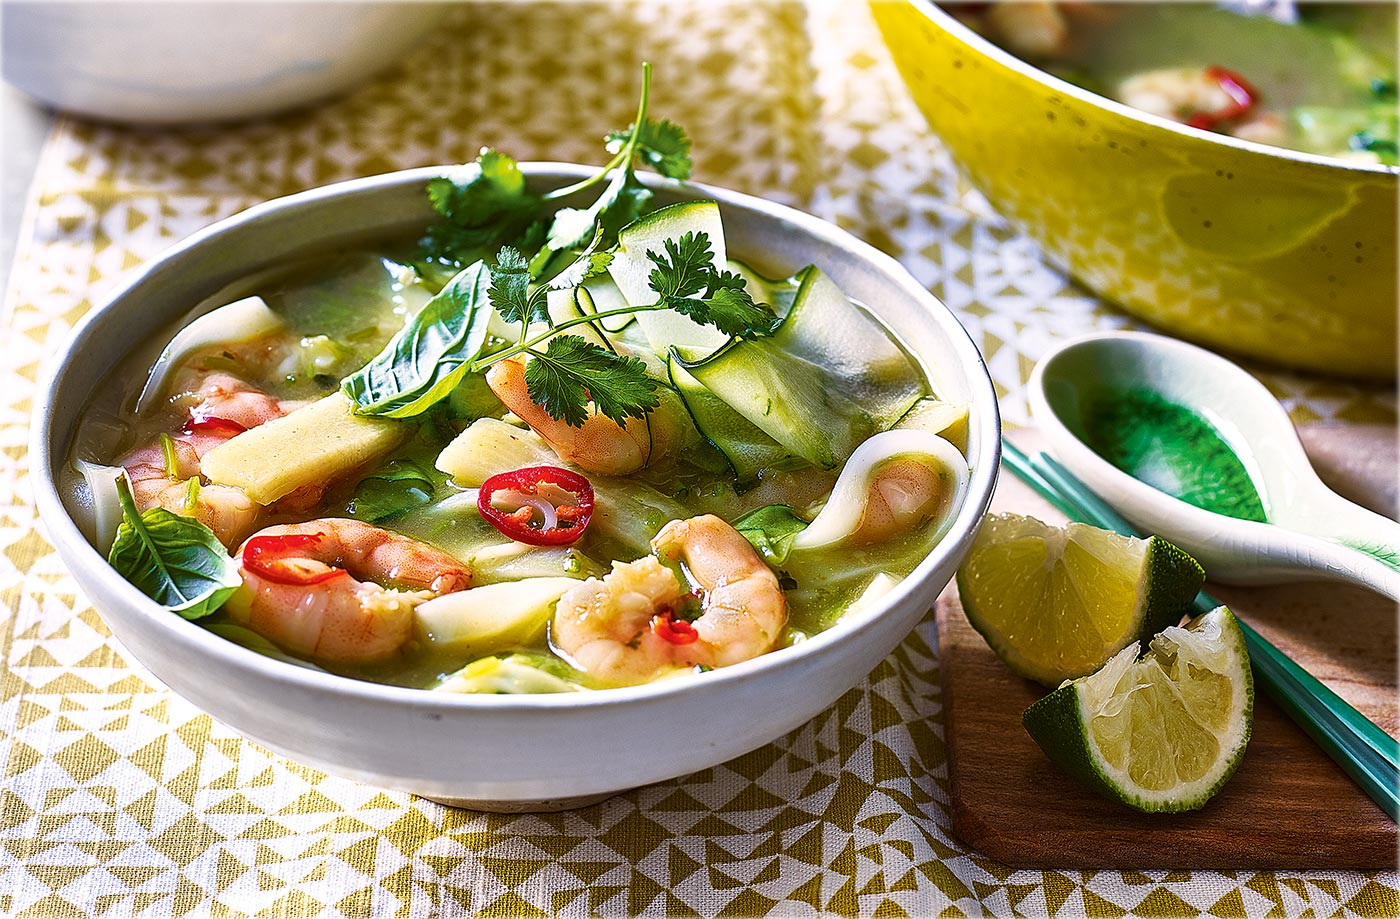 Malaysian king prawn and courgette laksa recipe